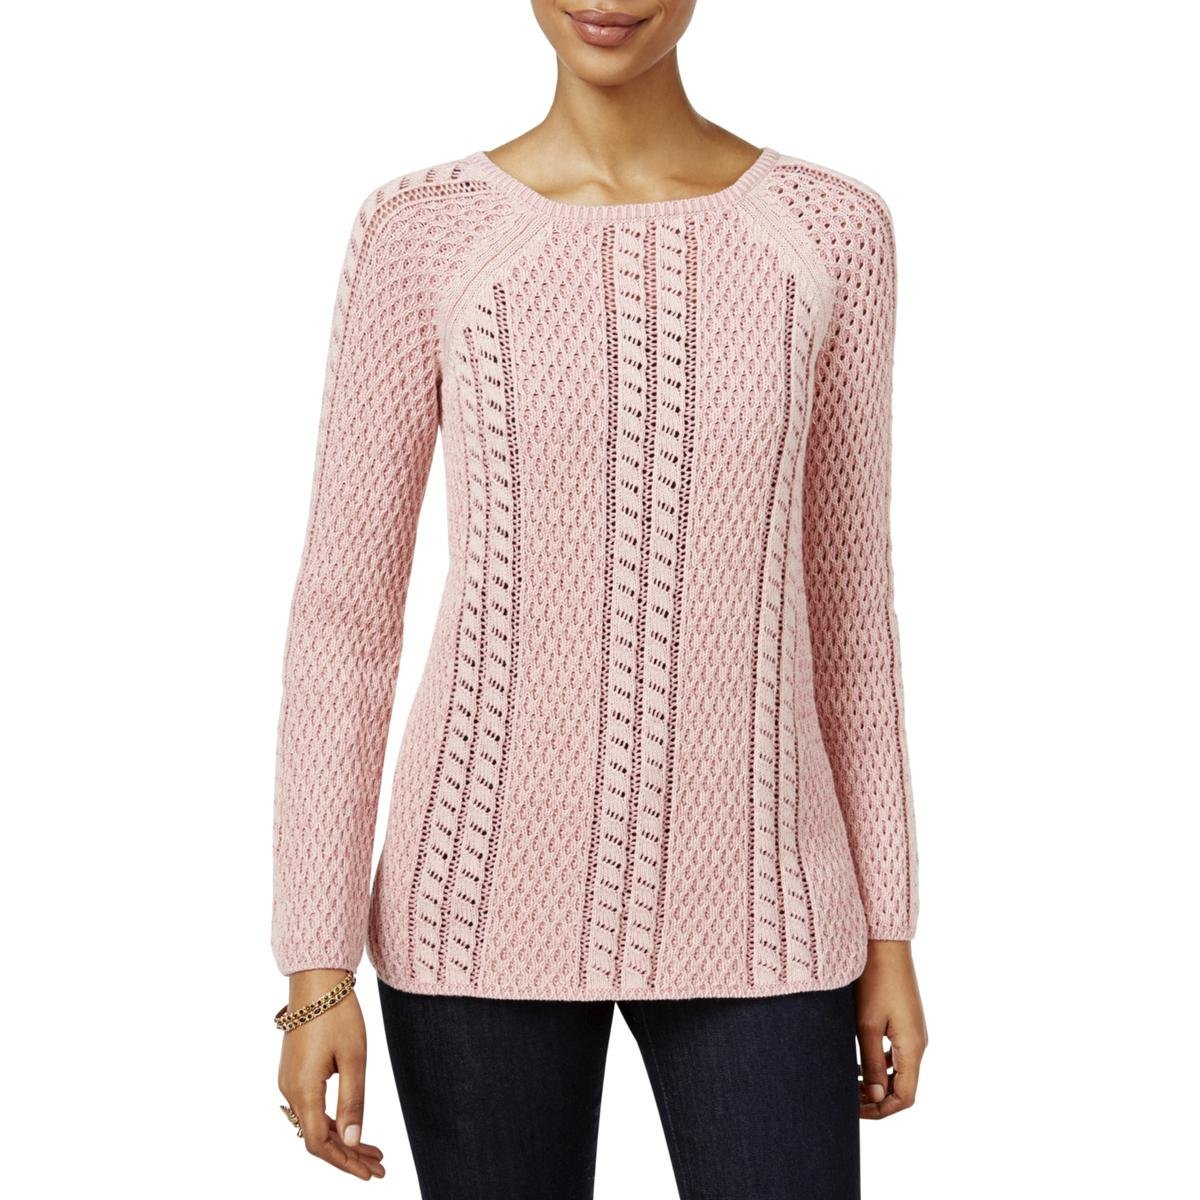 Style & Co.. Womens Petites Knit Long Sleeves Pullover Sweater Pink PM